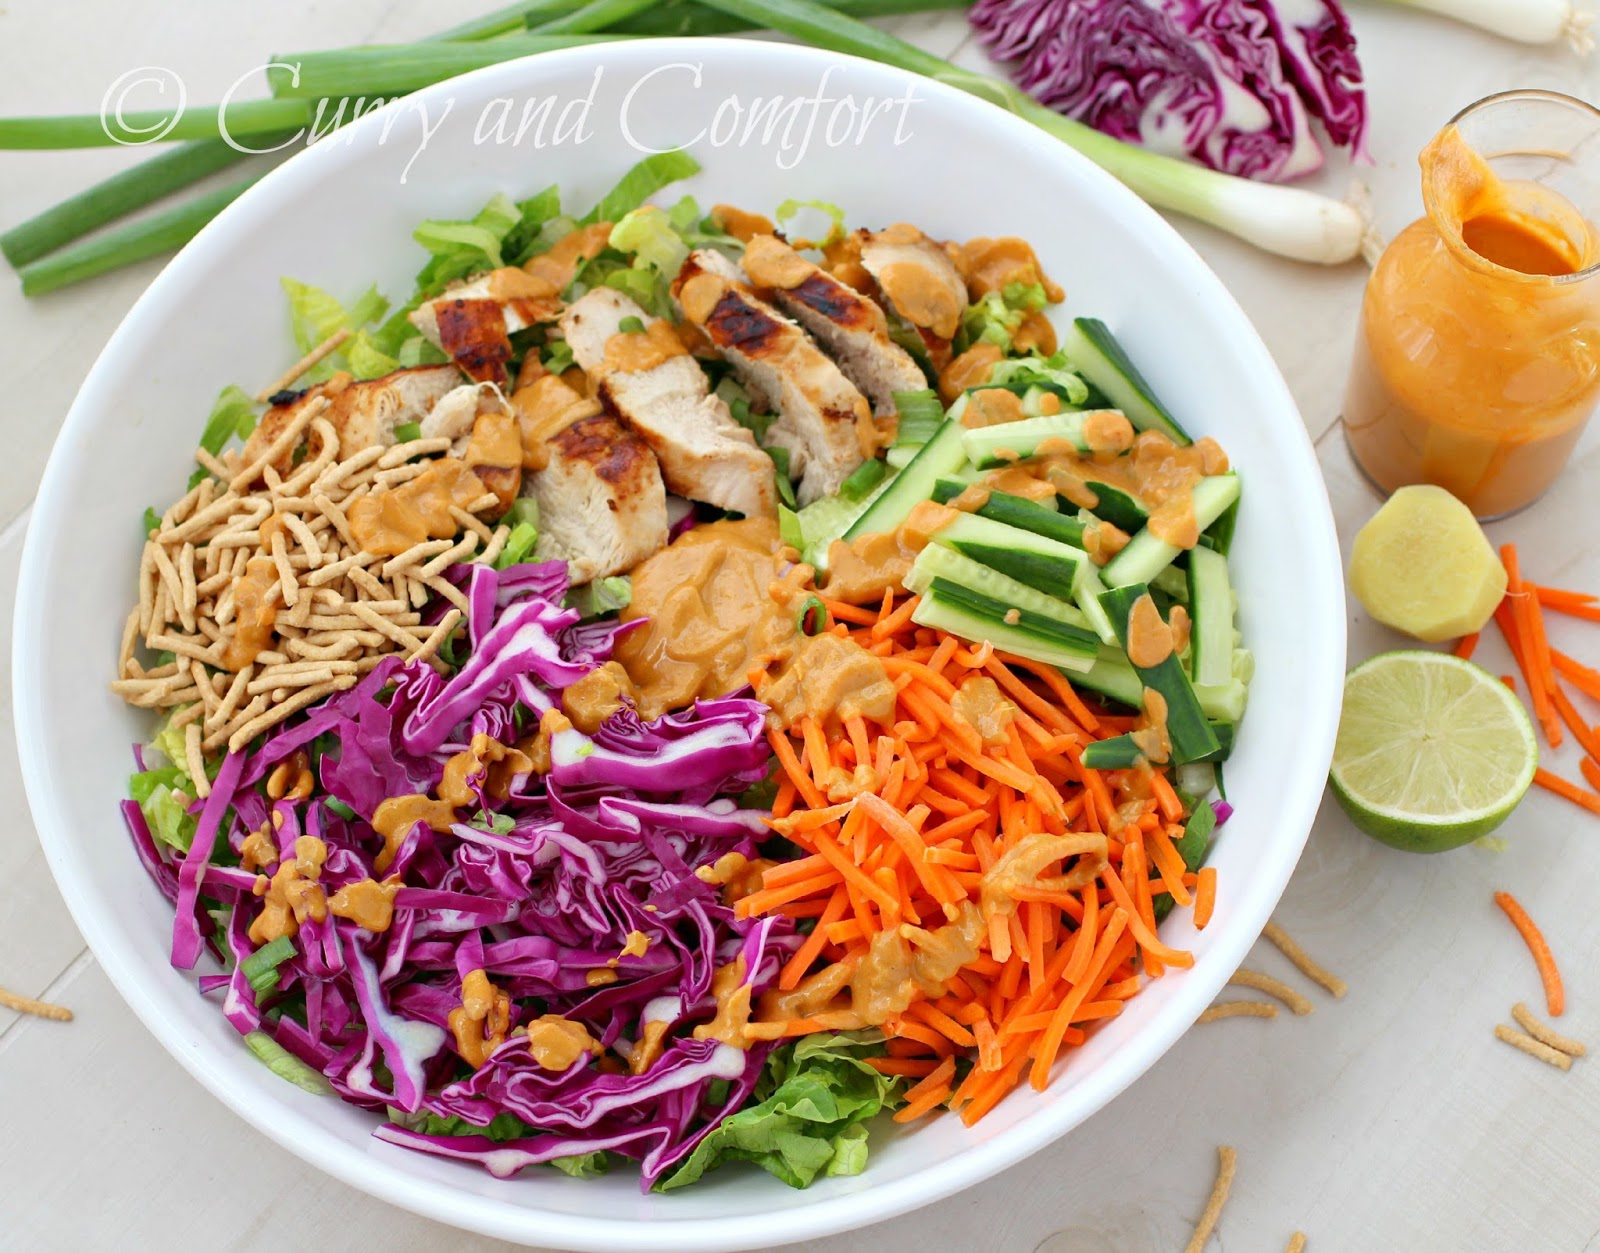 grilled chicken salad with spicy peanut dressing is a hearty salad ...